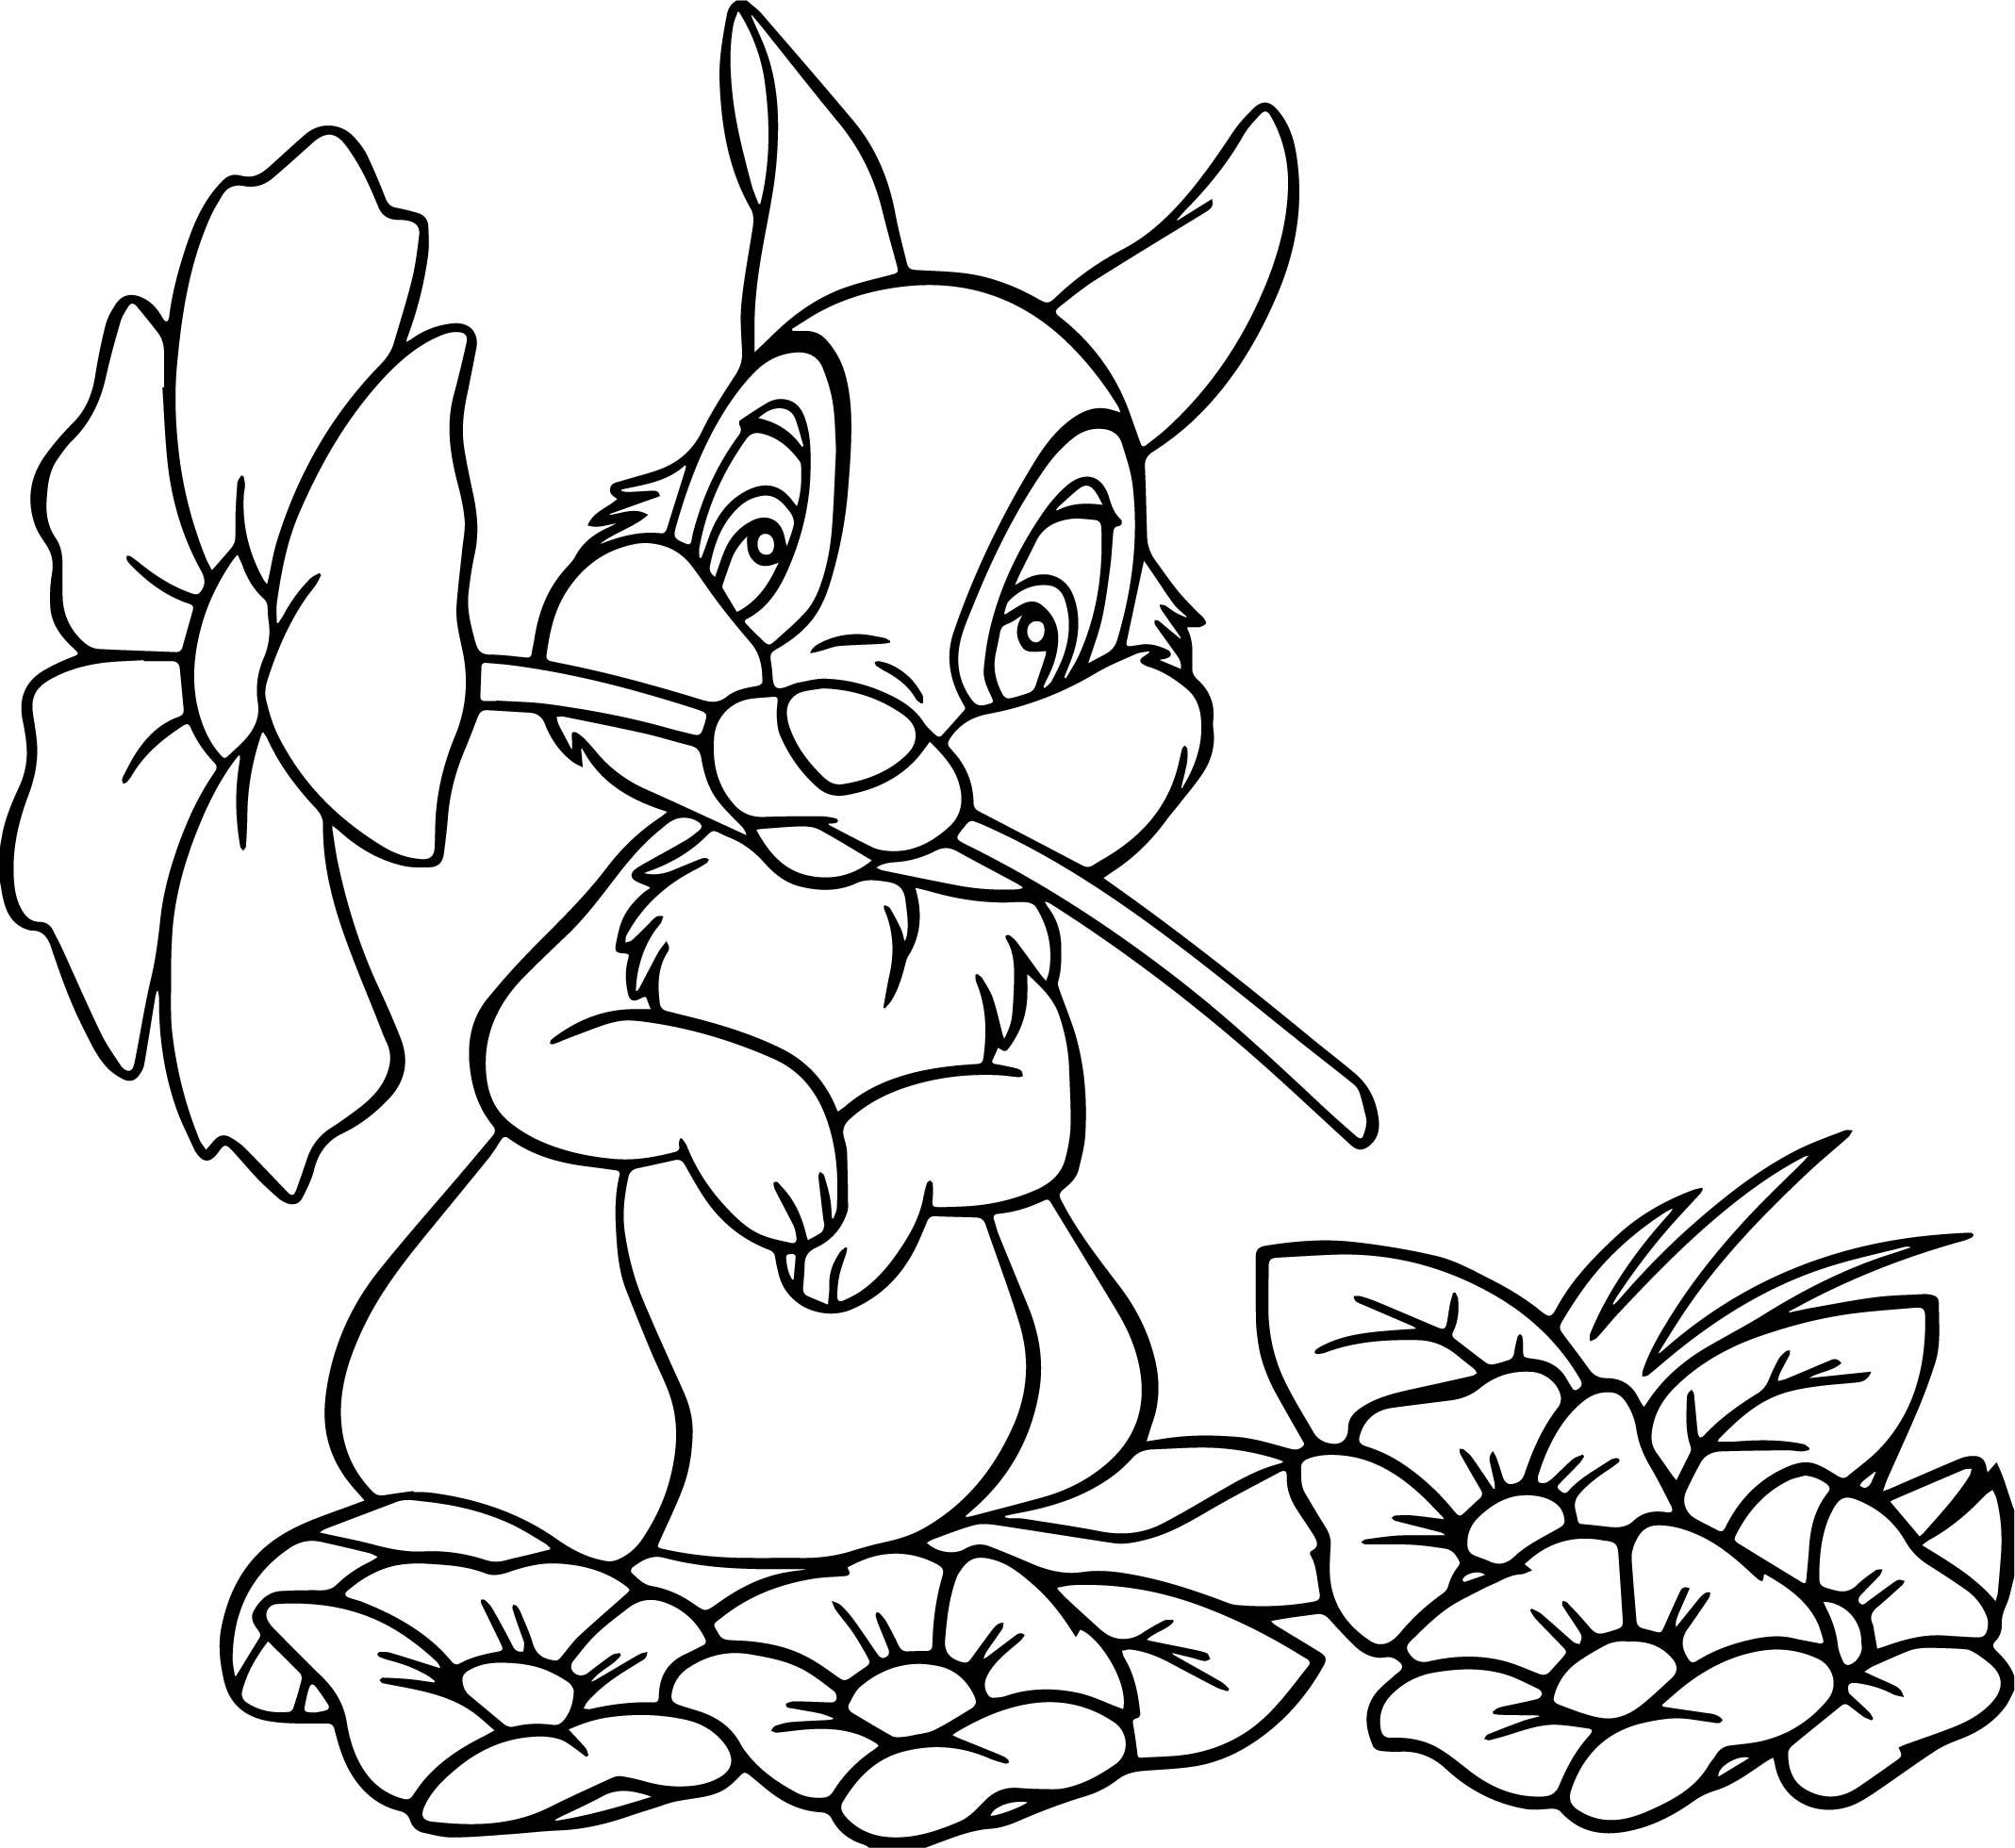 coloring pages magician with bunny - photo#26